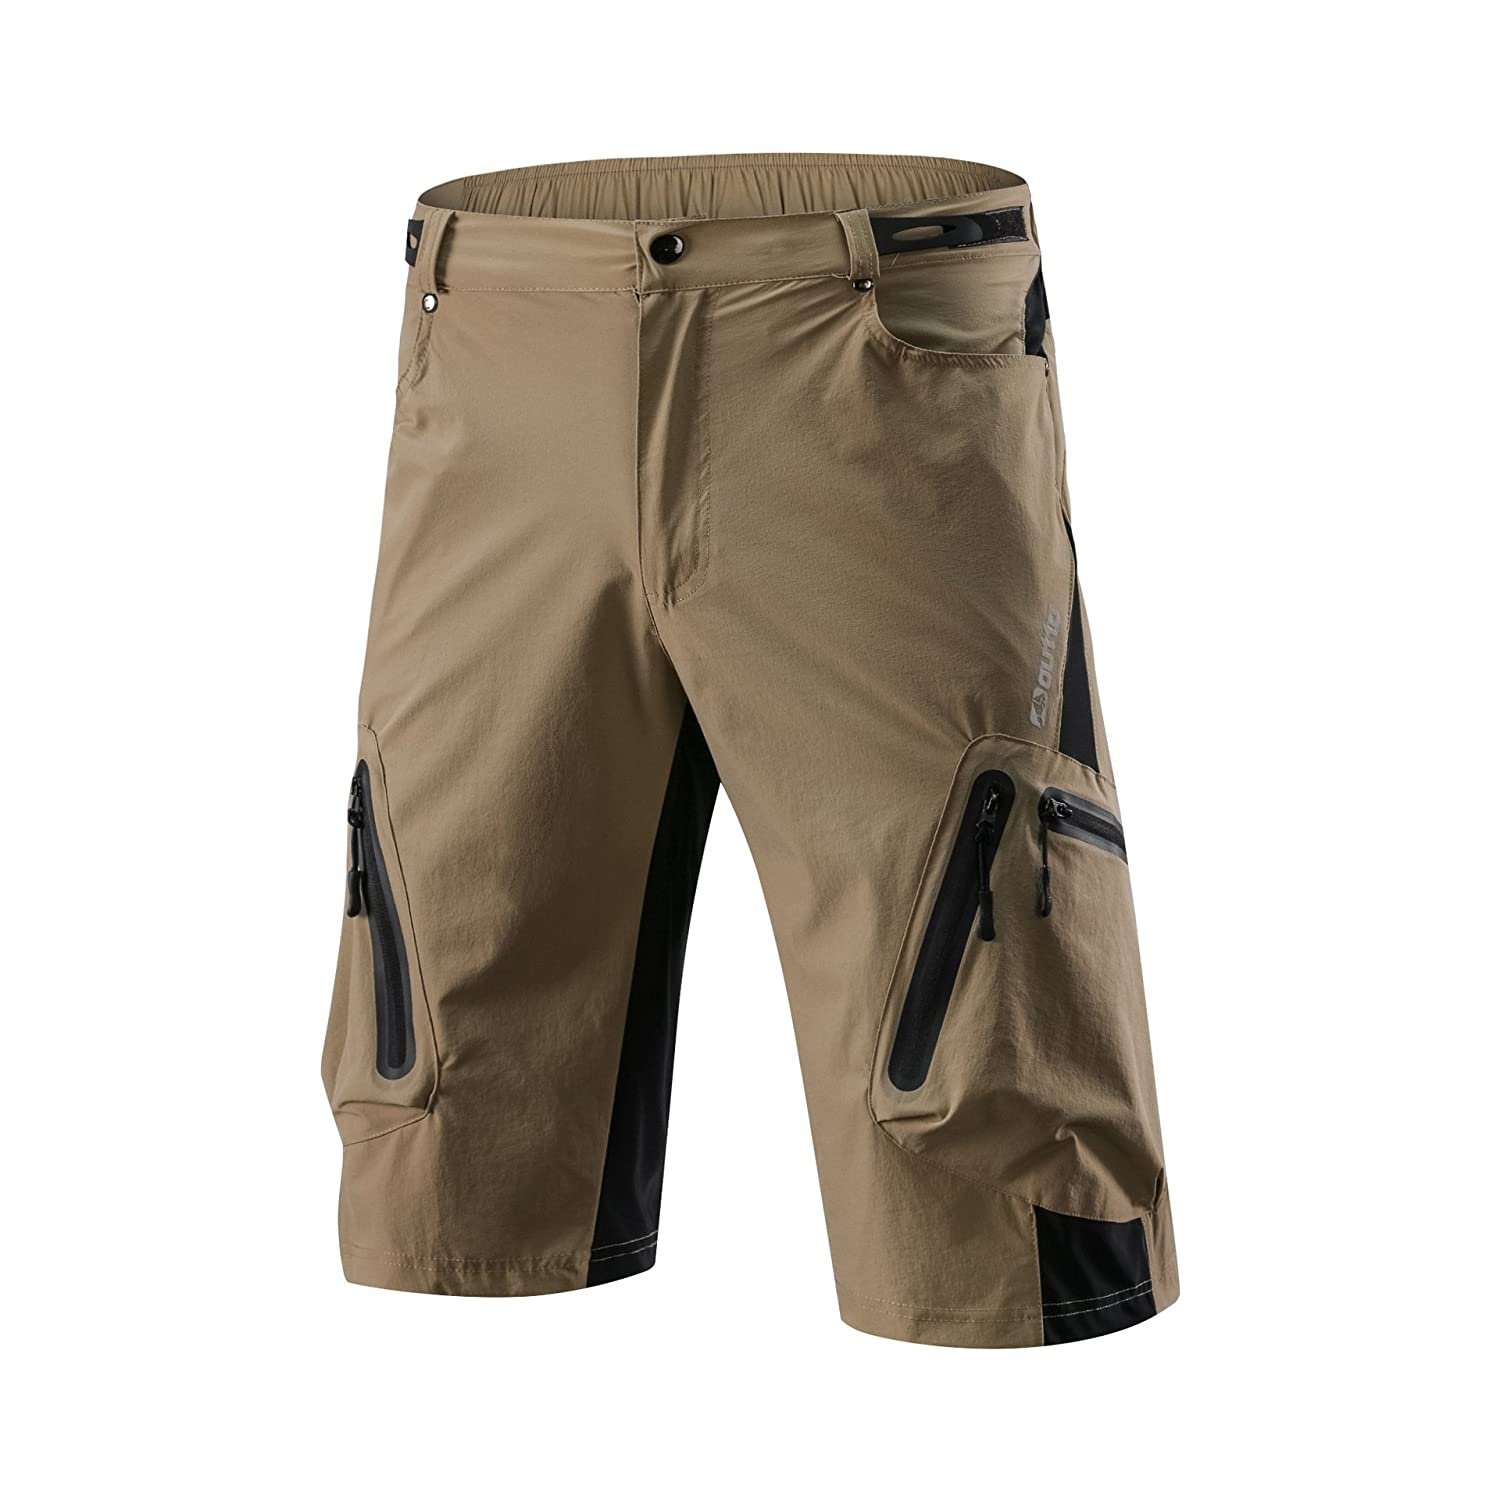 [定休日以外毎日出荷中] Mous メンズ One B07FLK14P4 SHORTS SHORTS メンズ XL(US) B07FLK14P4, アレンシー:f2fcbcc1 --- martinemoeykens-com.access.secure-ssl-servers.info